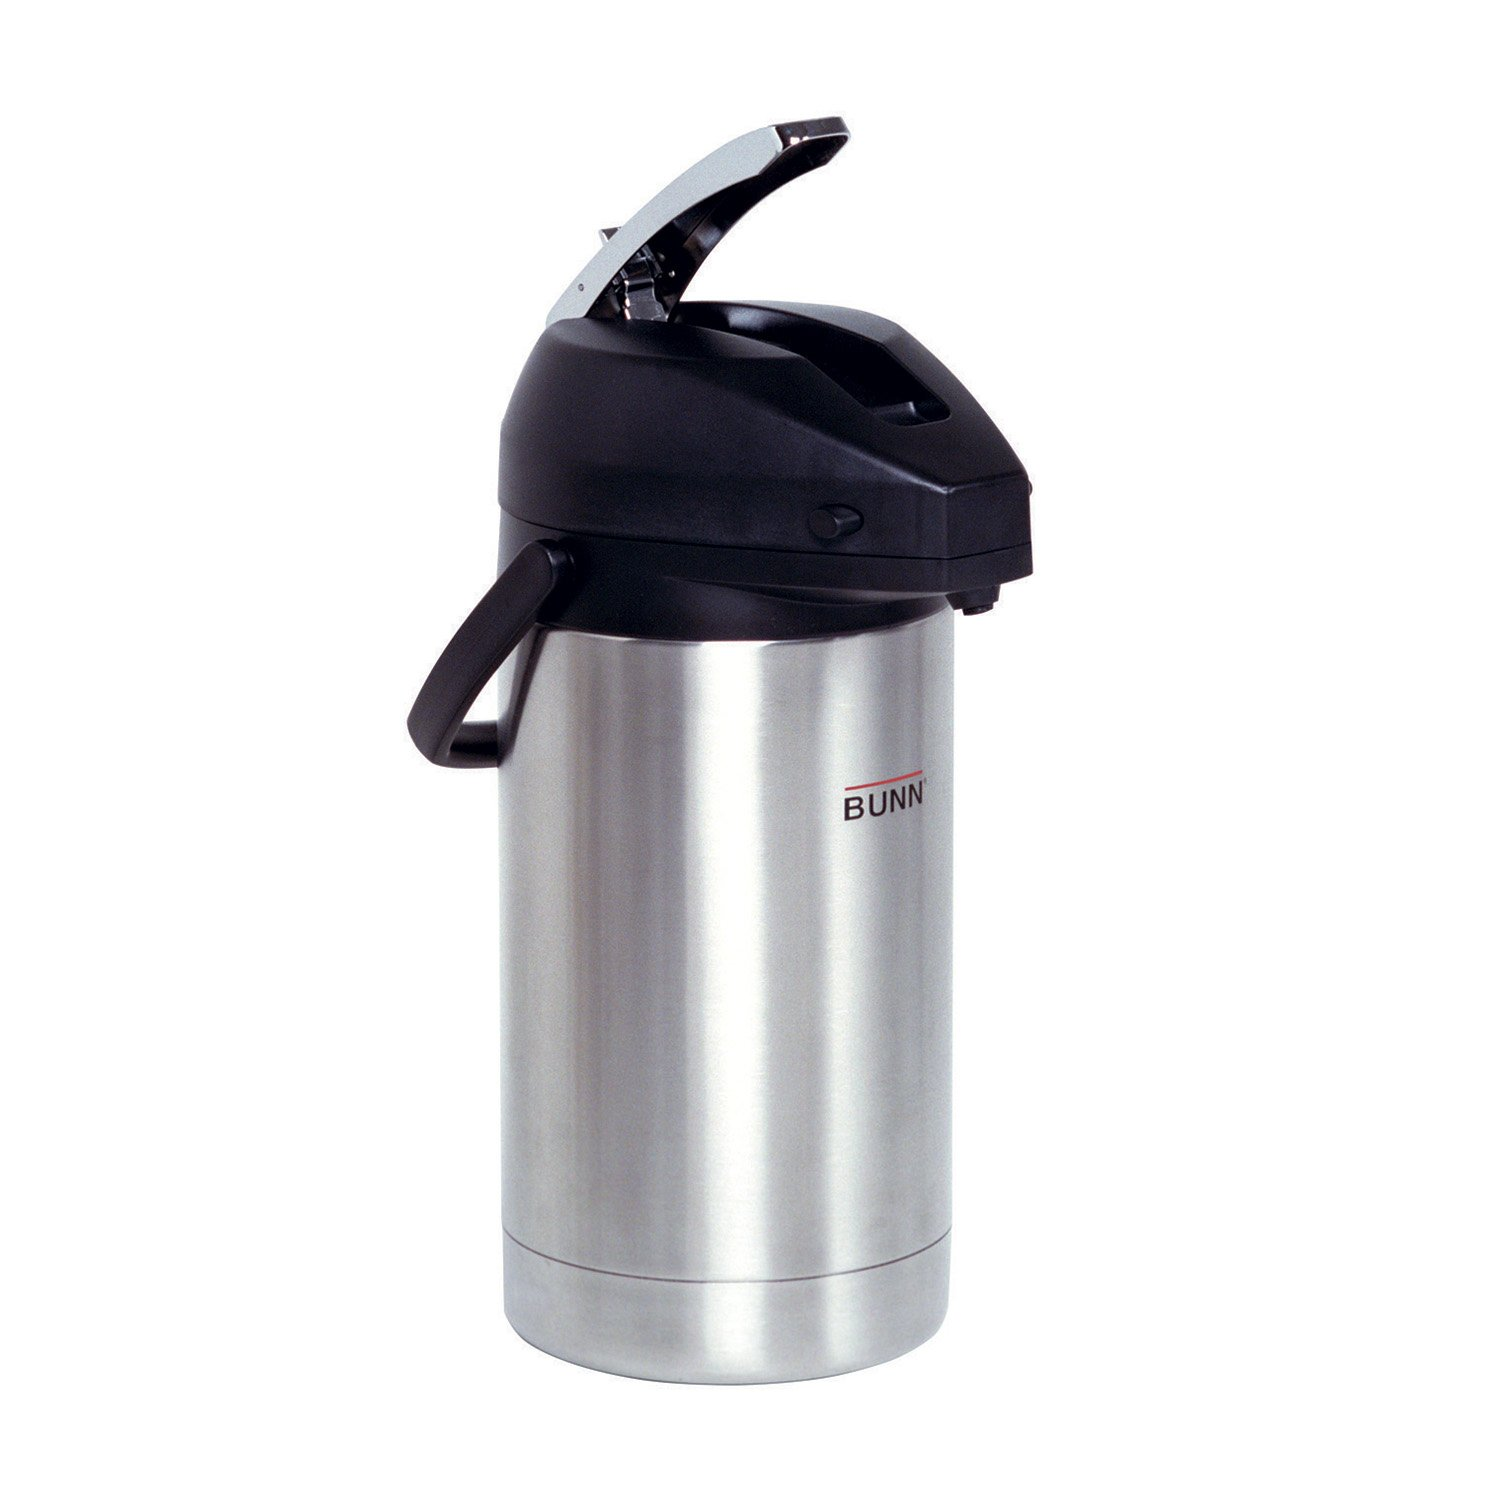 BUNN  32130.0000 3.0-Liter Lever-Action Airpot, Stainless Steel by BUNN